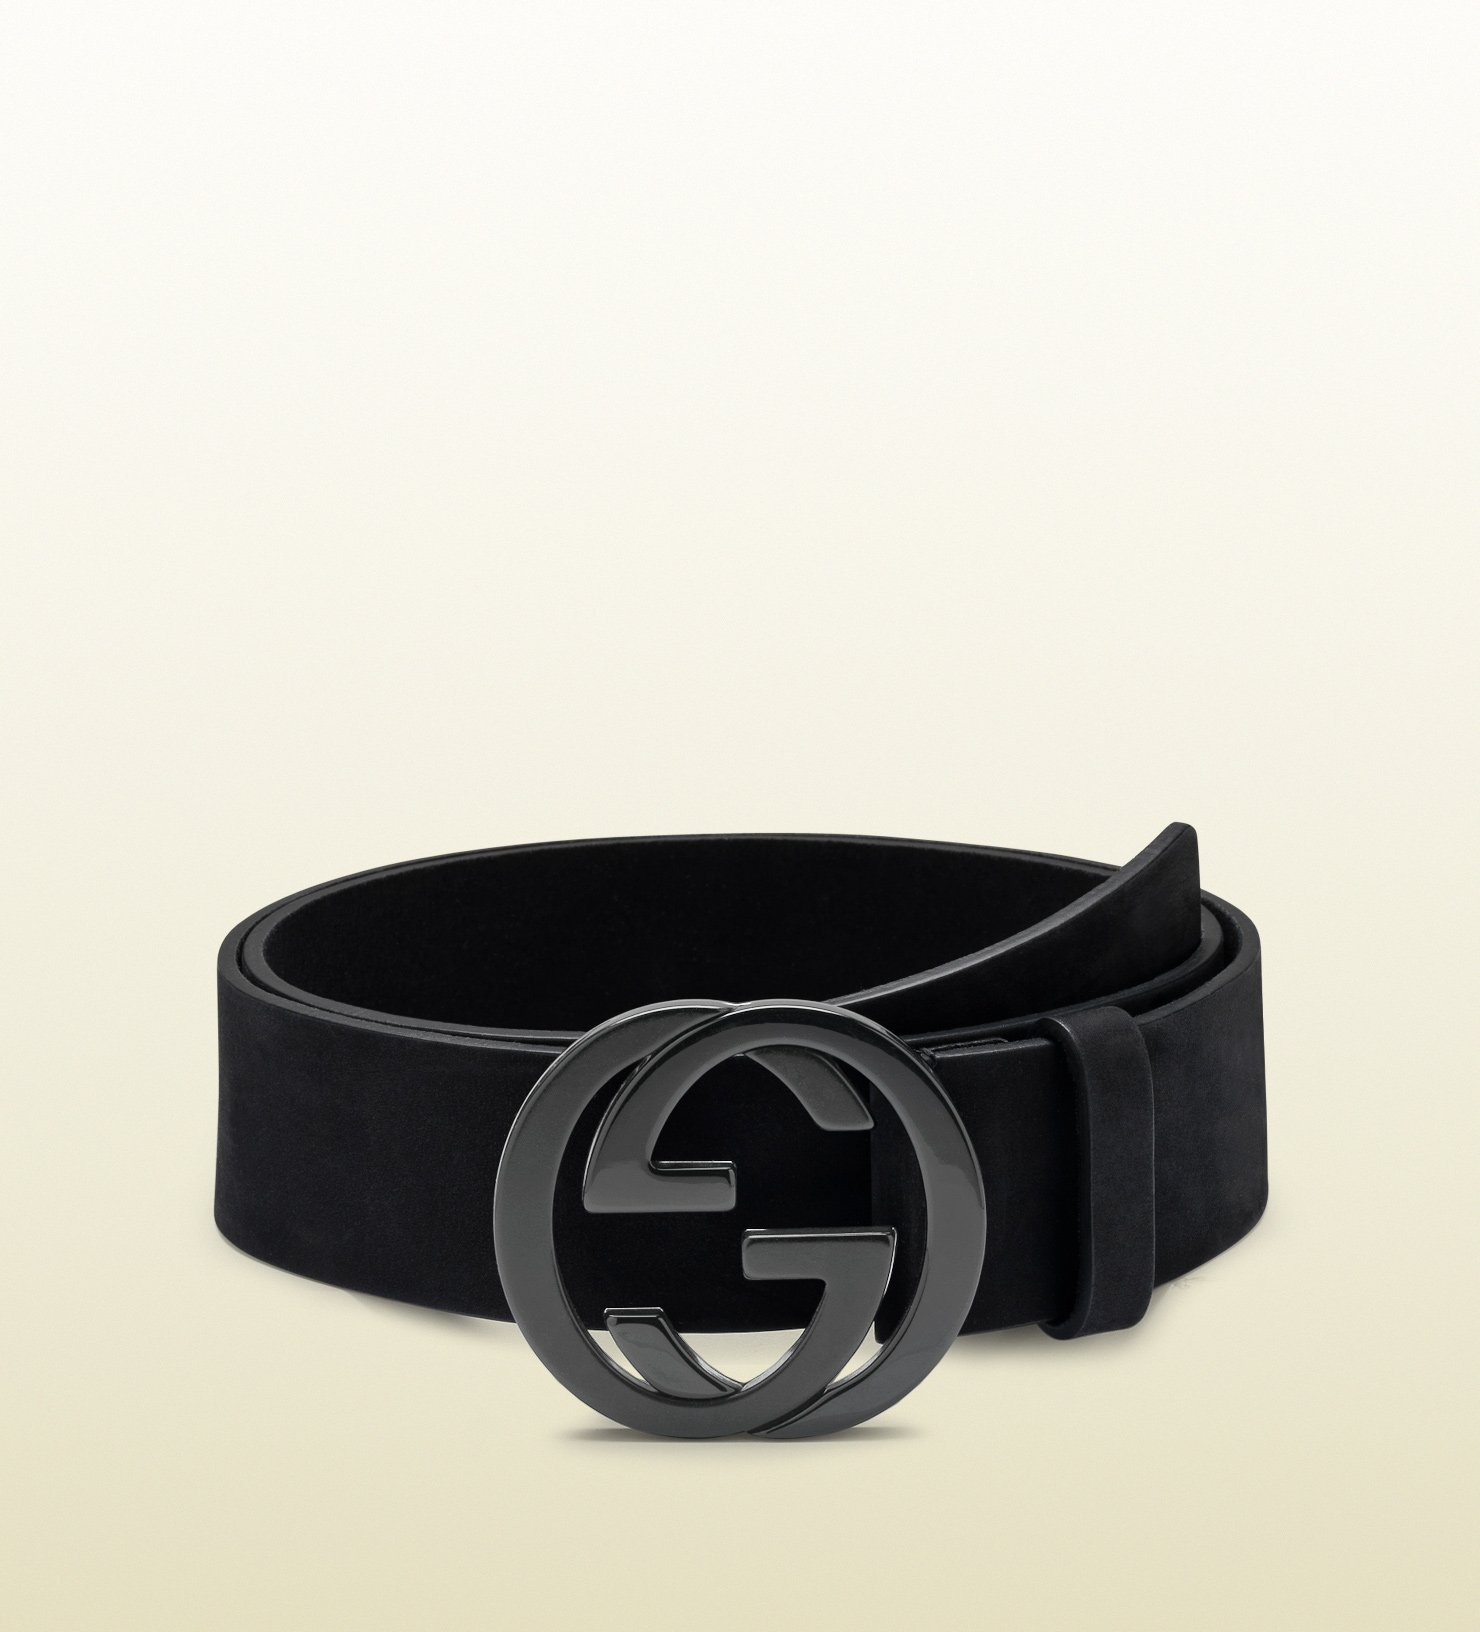 designer hermes belts tvdt  Gucci Belt Buckle black